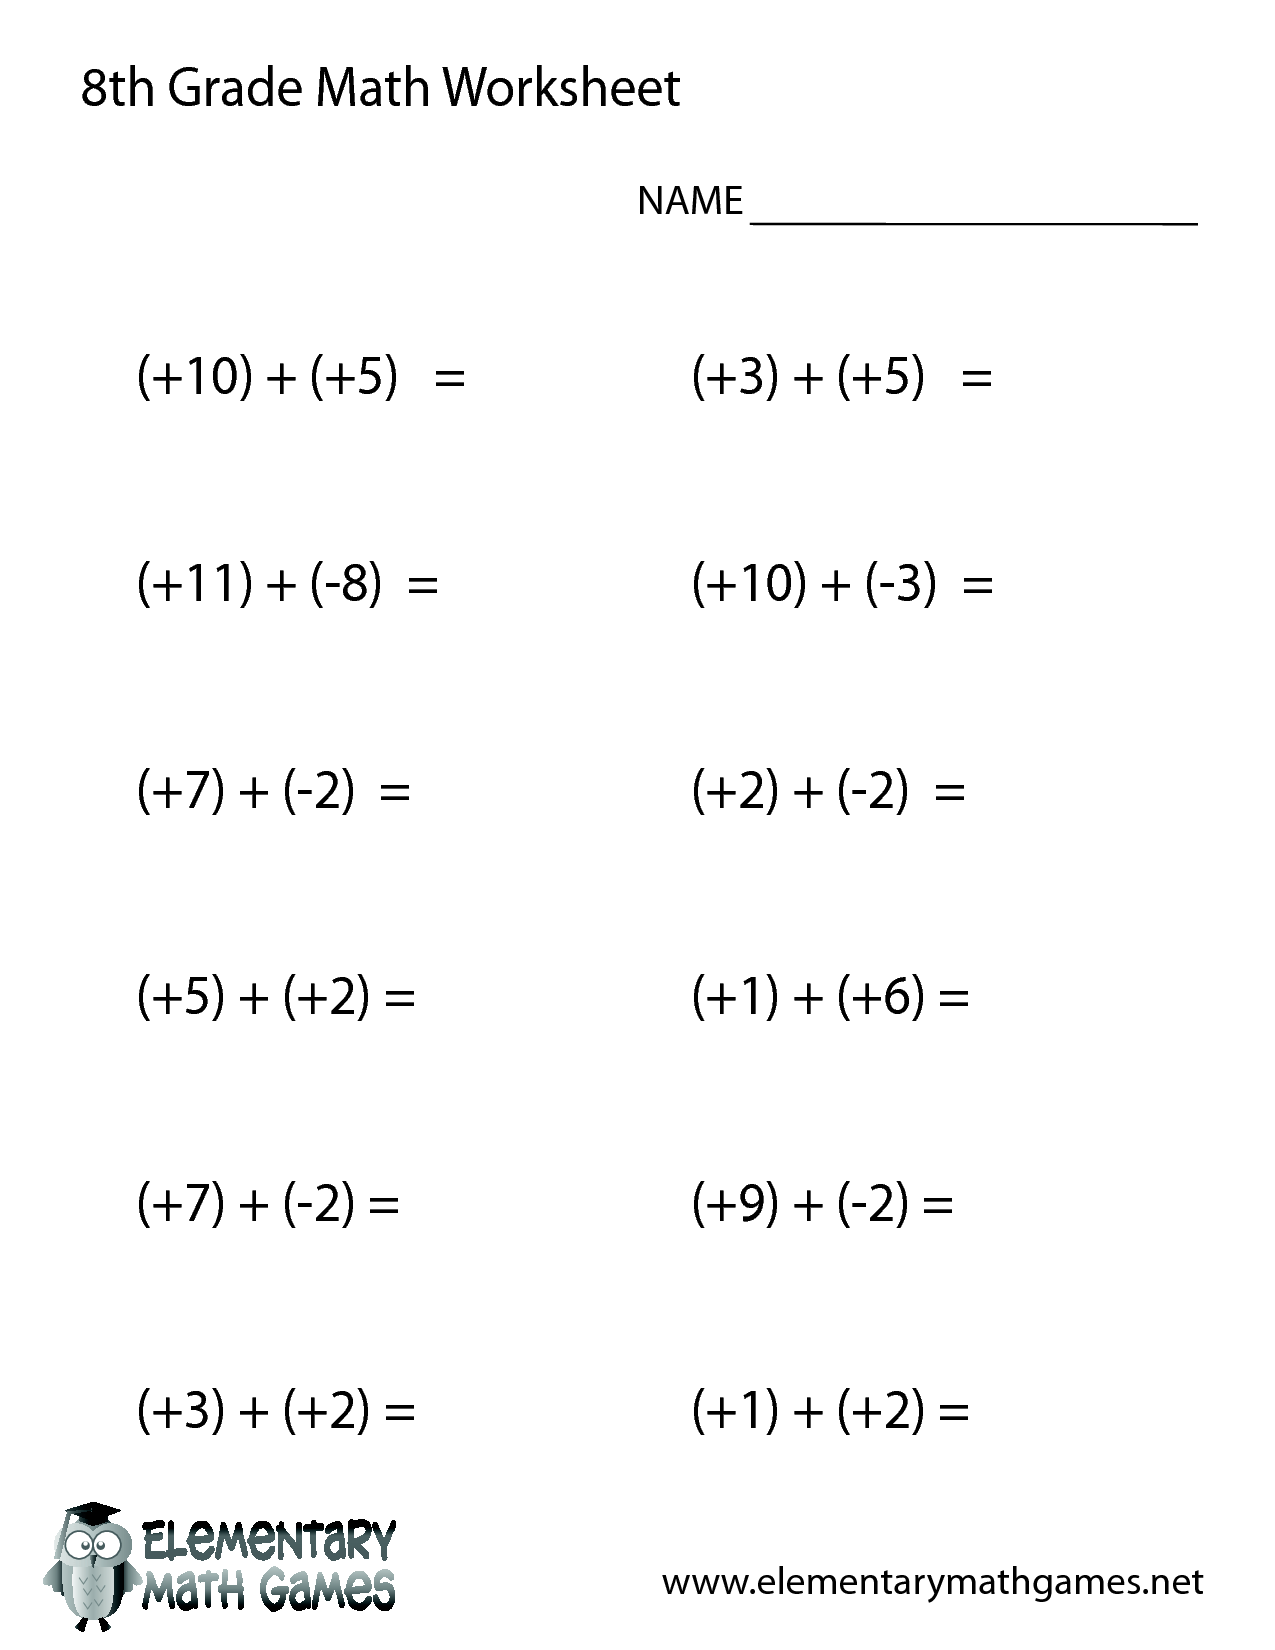 9th Grade Math Worksheets And Answers Free Library With On